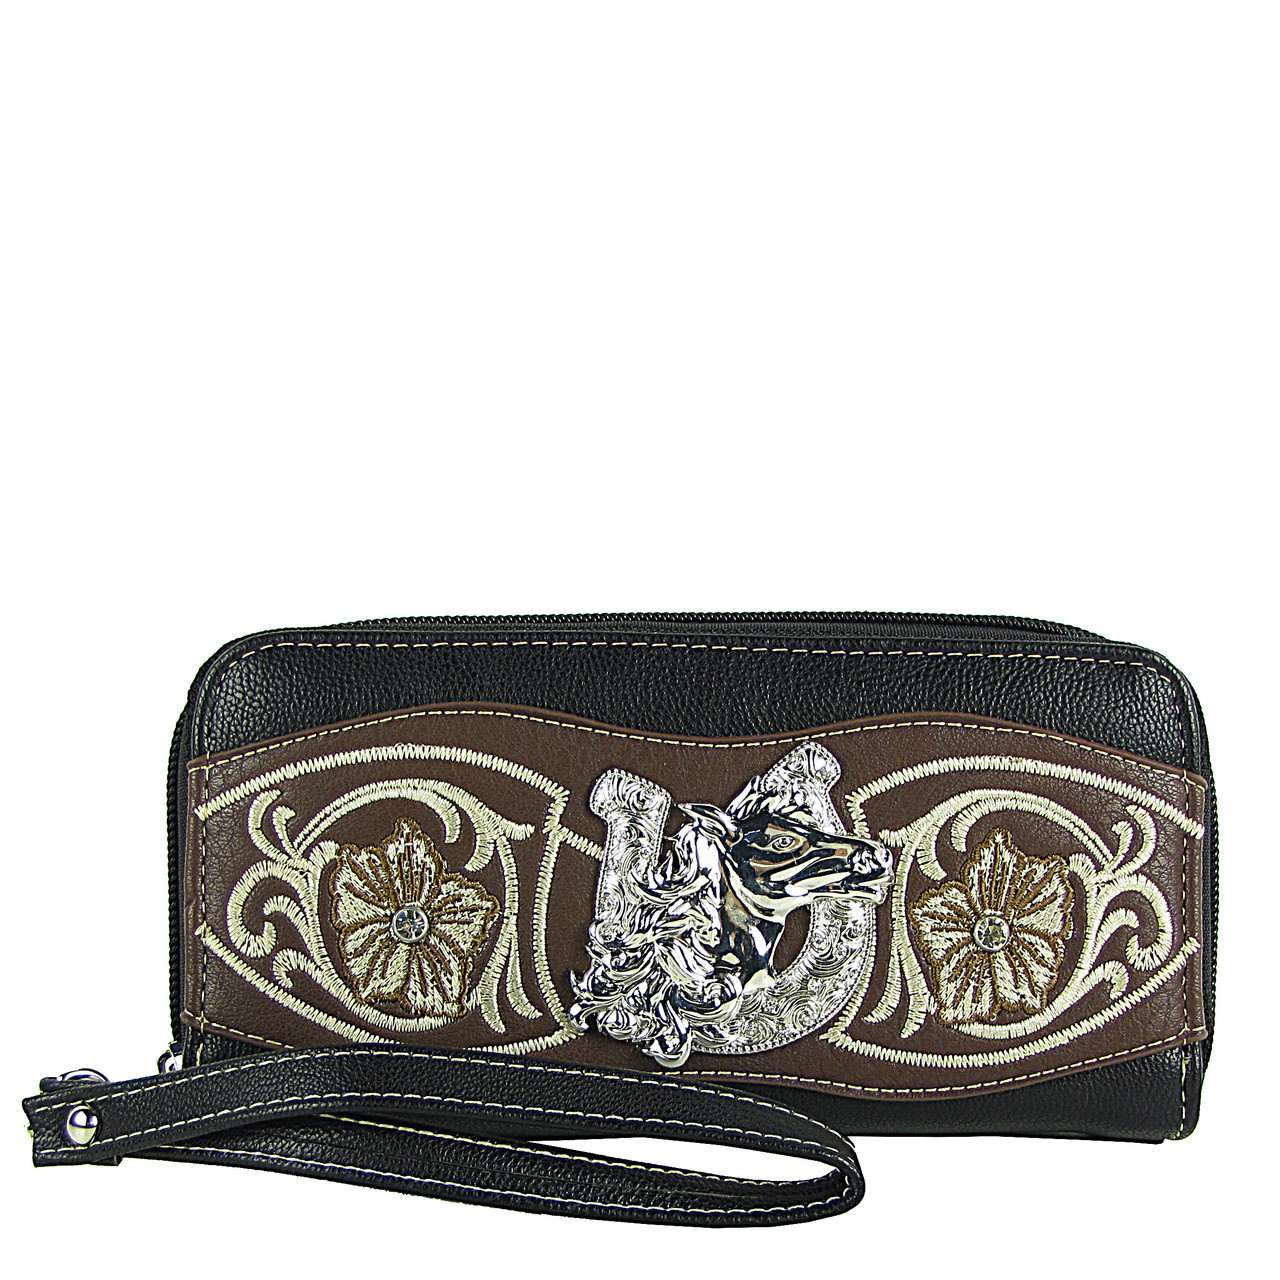 BLACK HORSESHOE WITH FLOWER LOOK ***(DOUBLE ZIPPER)*** WALLET CB3-1205BLK